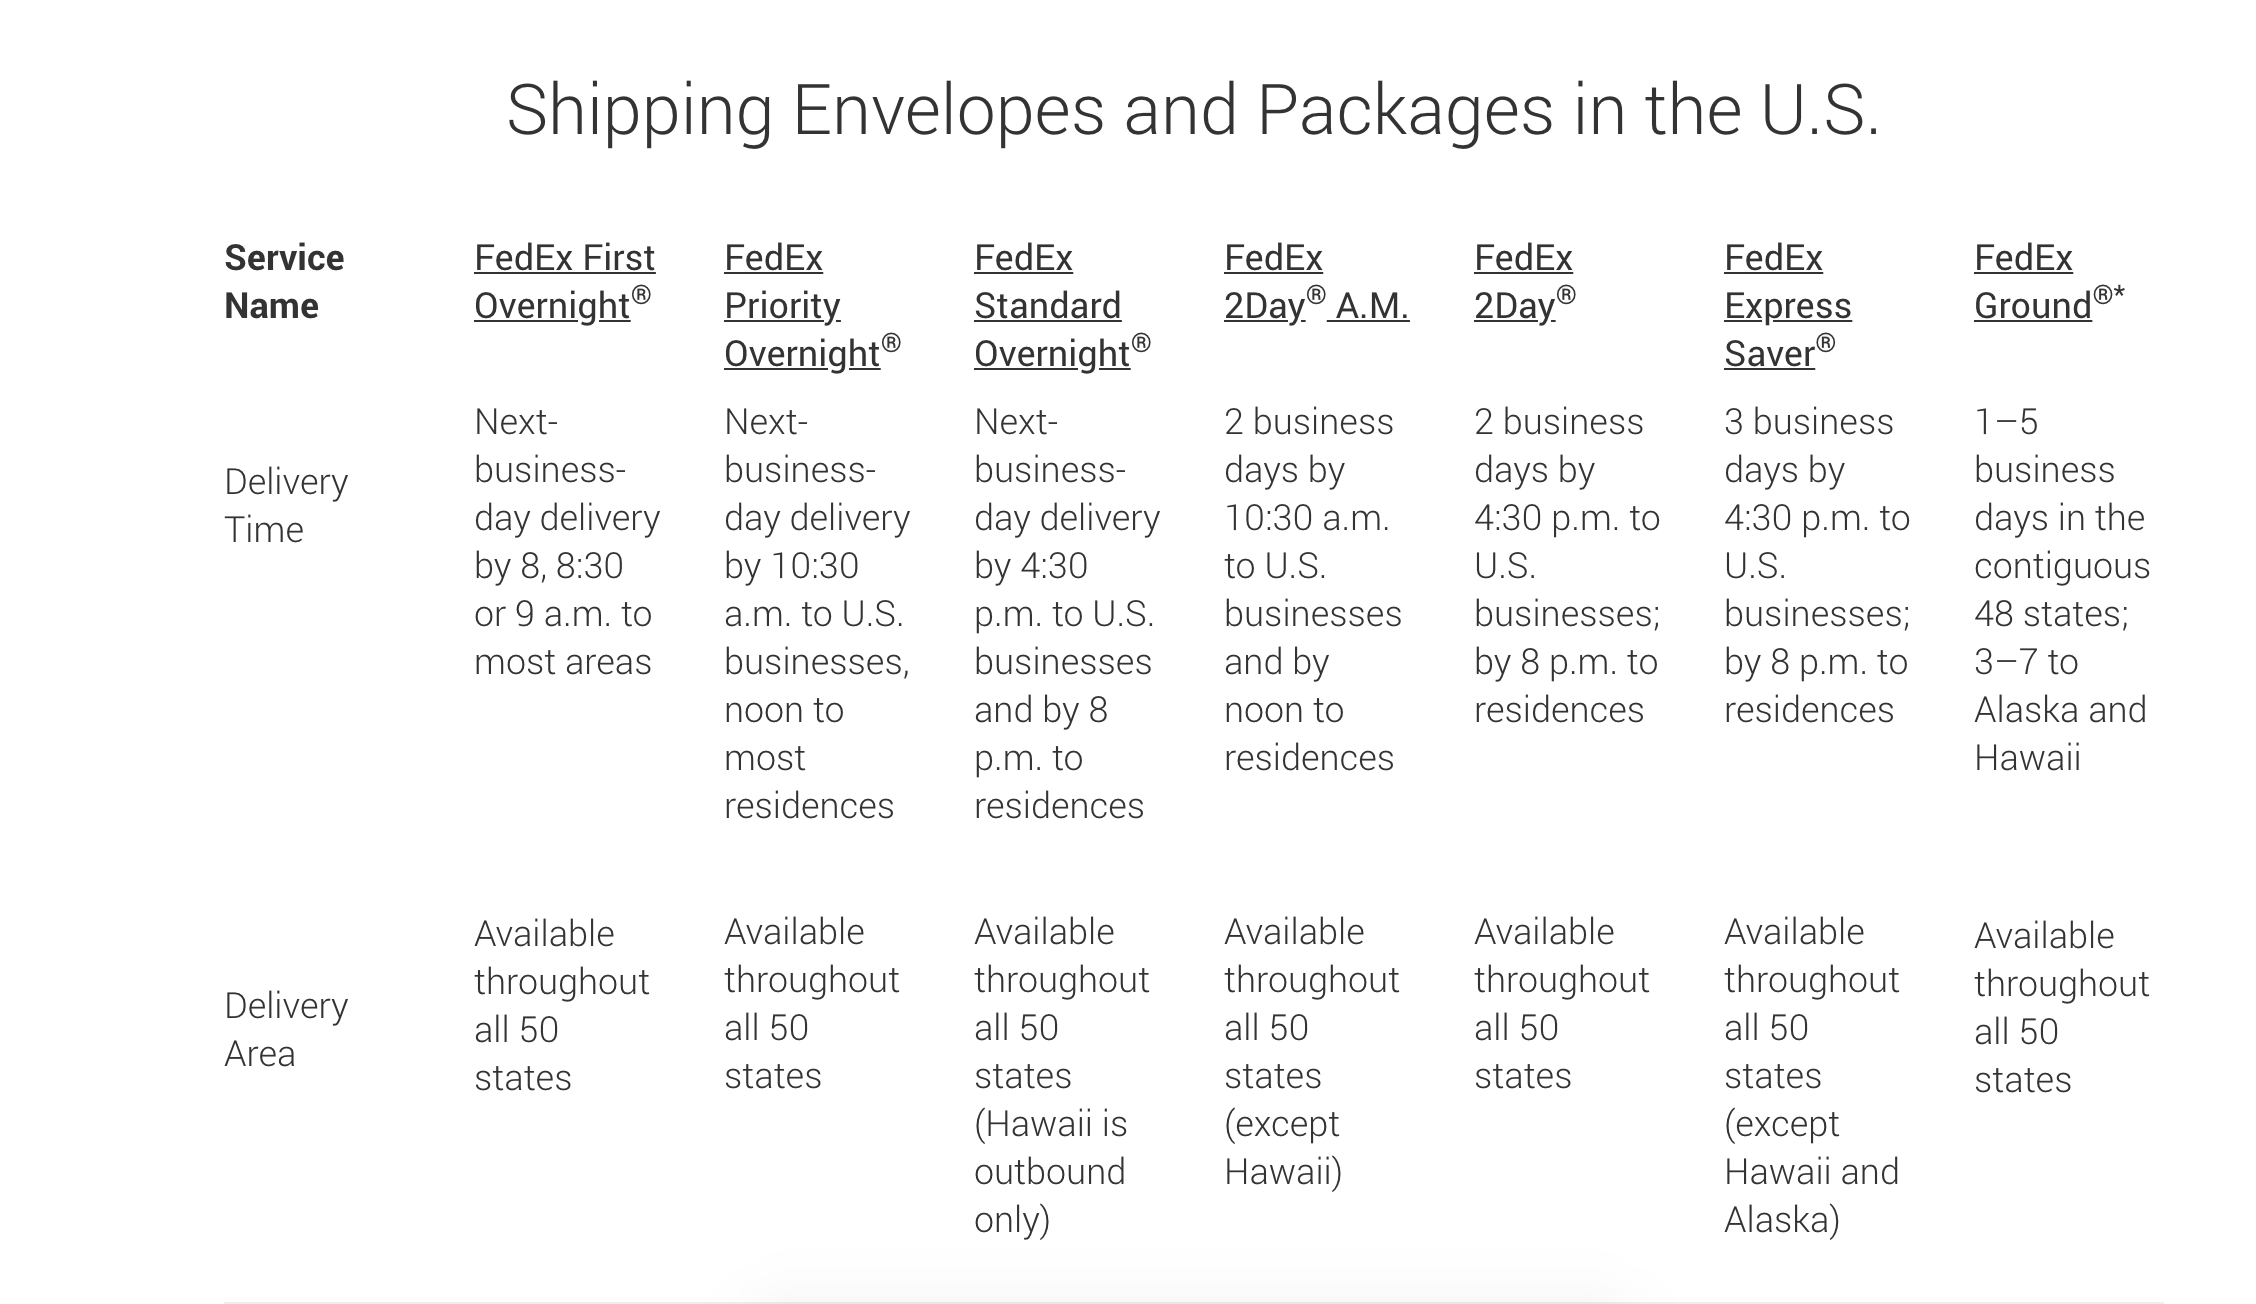 FedEx shipping options for sending packages and envelopes domestically